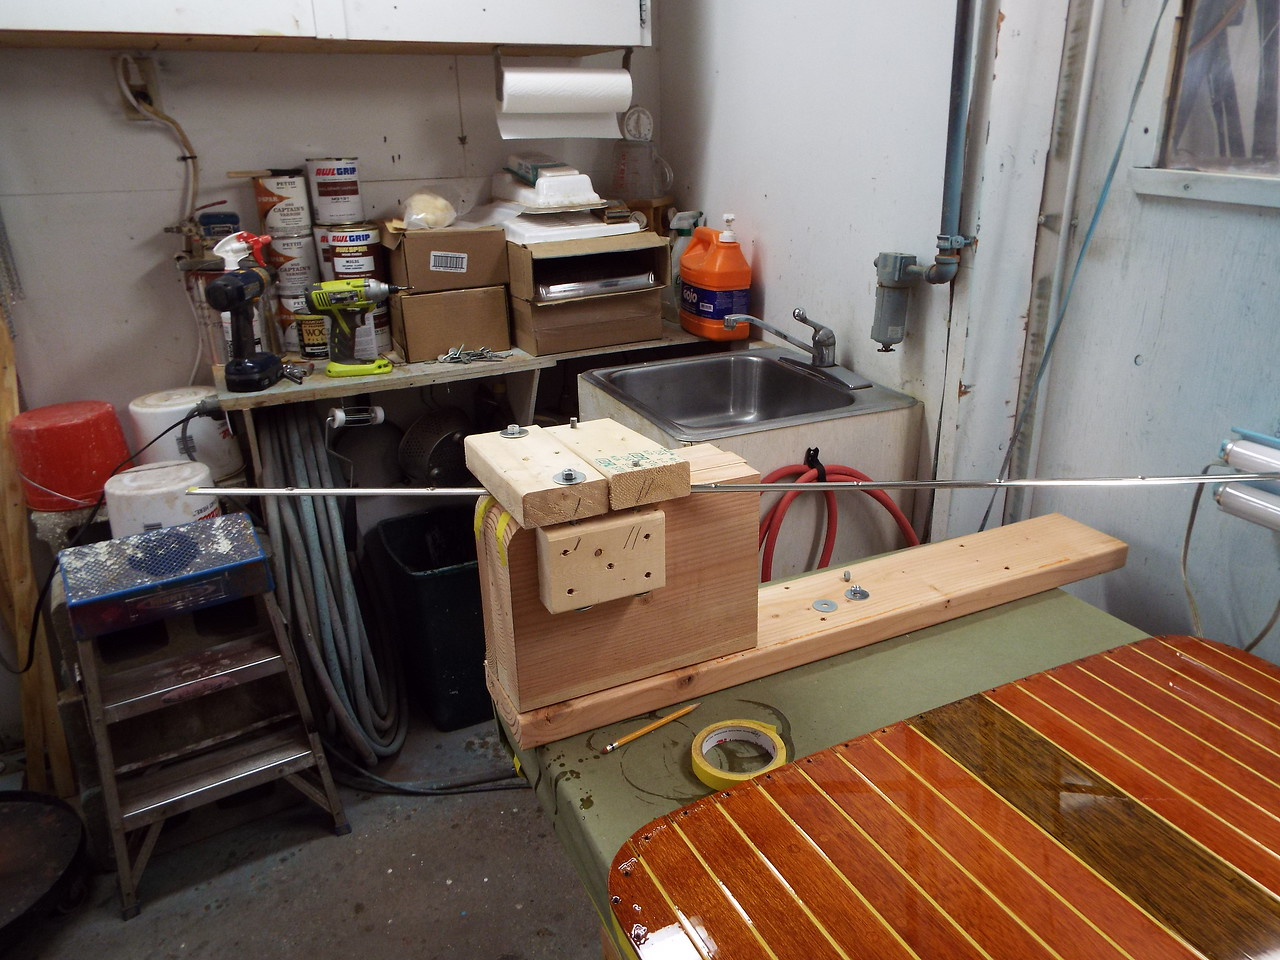 Another picture of the jig with a piece of trim installed before it was bent.